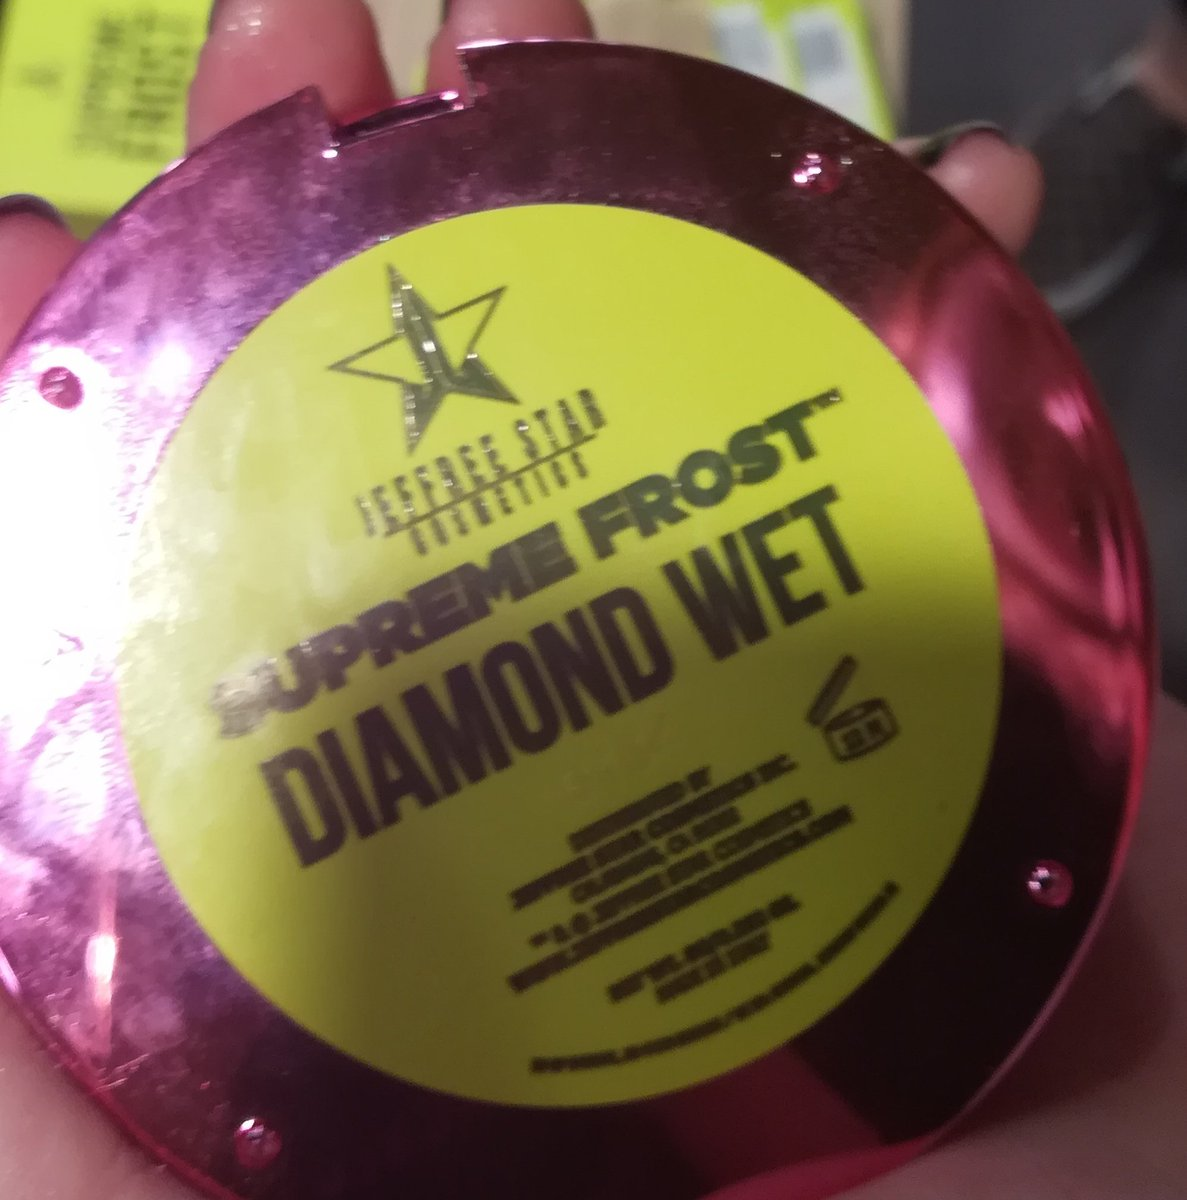 Tbh are Jeffree Star highlighters worth it? I'm tempted to buy this one but I don't wear Highlighter that often, so it's kind of expensive for me to get one for like that one time in the month that I feel like it.  I need a sugar daddy. https://t.co/skuA2dxEK7